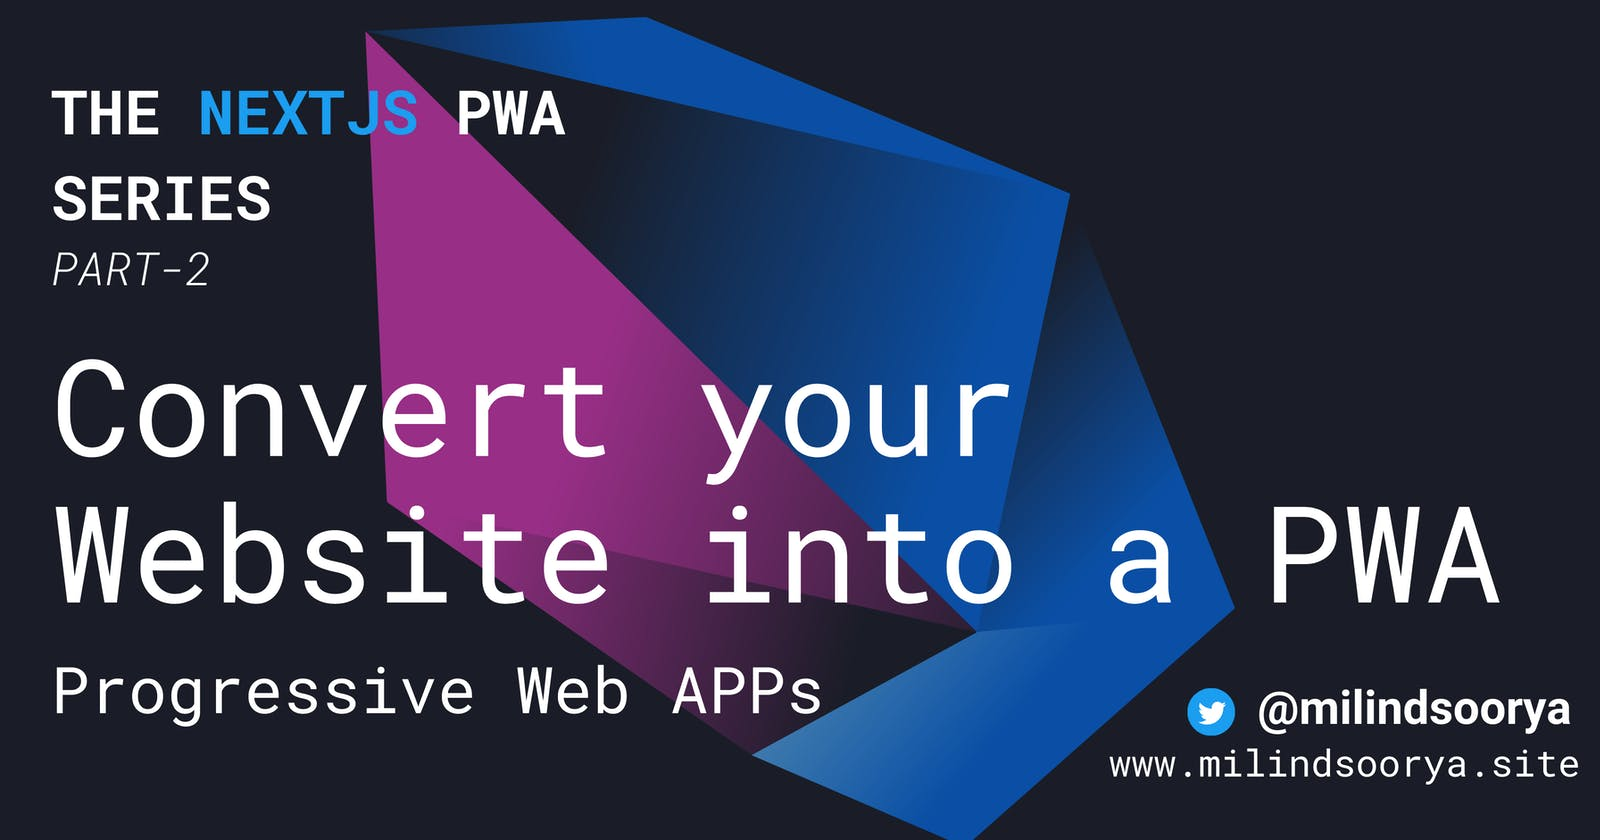 Convert your website into a PWA in 8 simple steps   Next.js   PWA Series PART-2